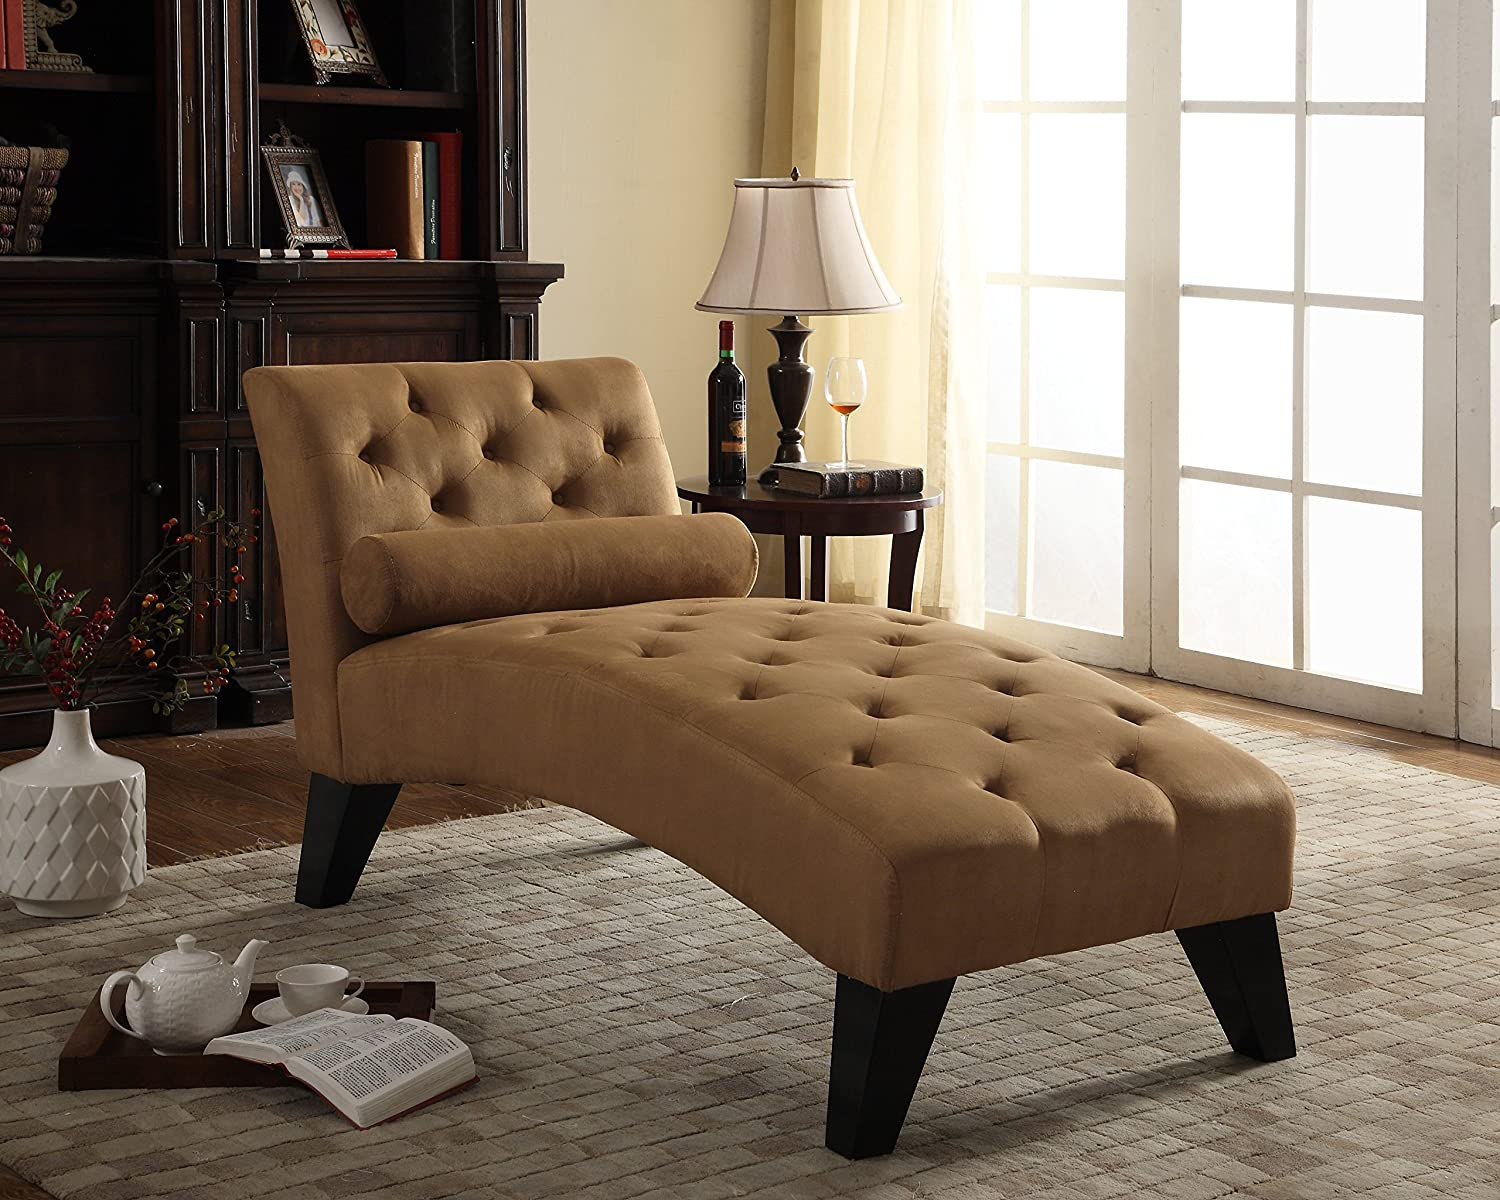 NHI Express Mila Chaise Lounge, 61 by 26.5 by 32